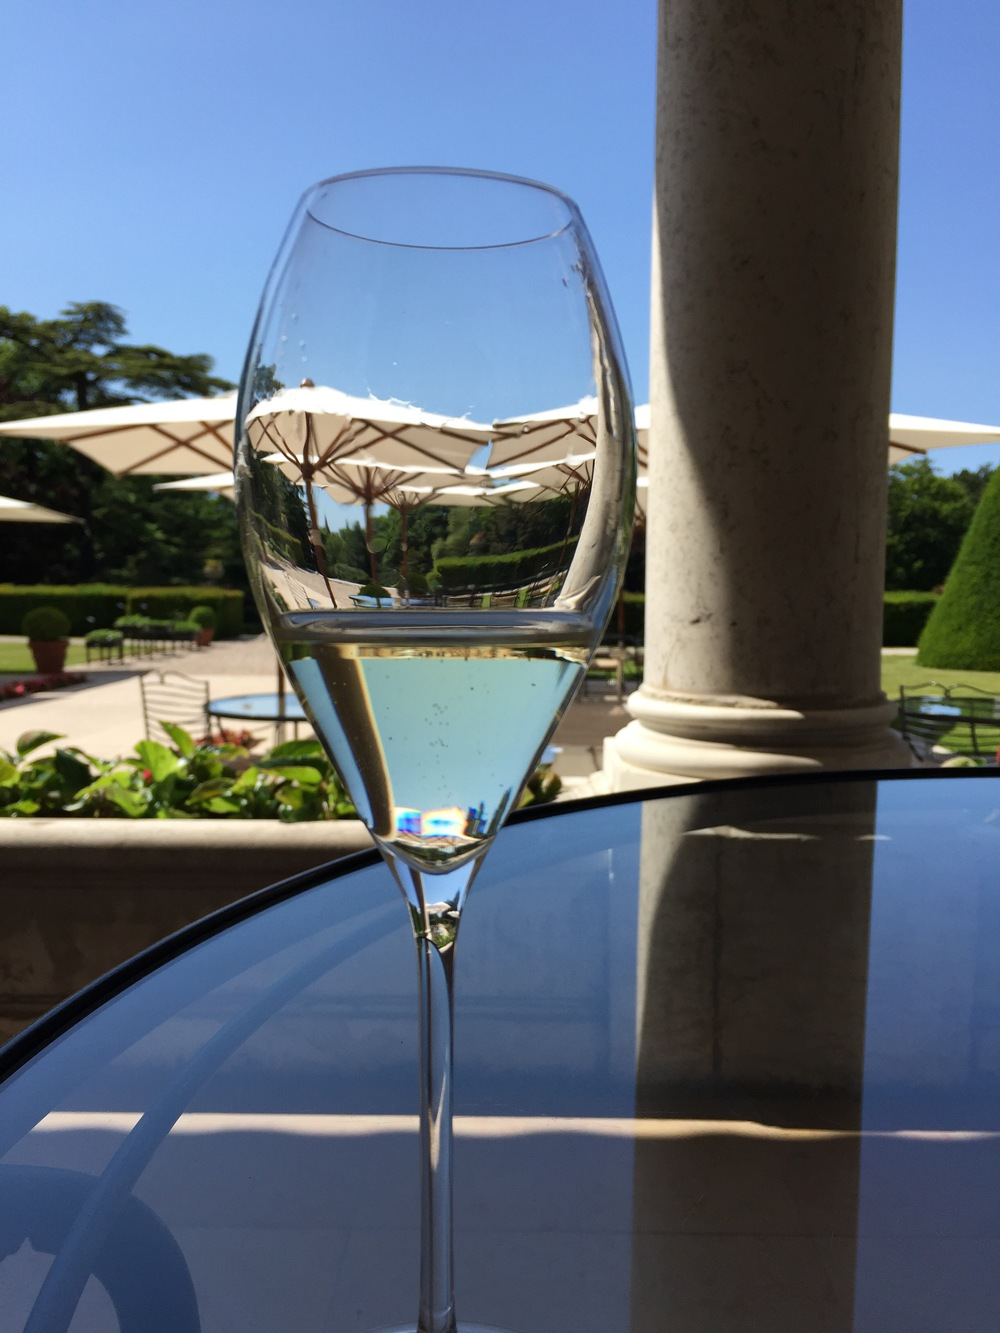 A glass of Mumm de Cramant at Le Jardin bar at Les Crayères